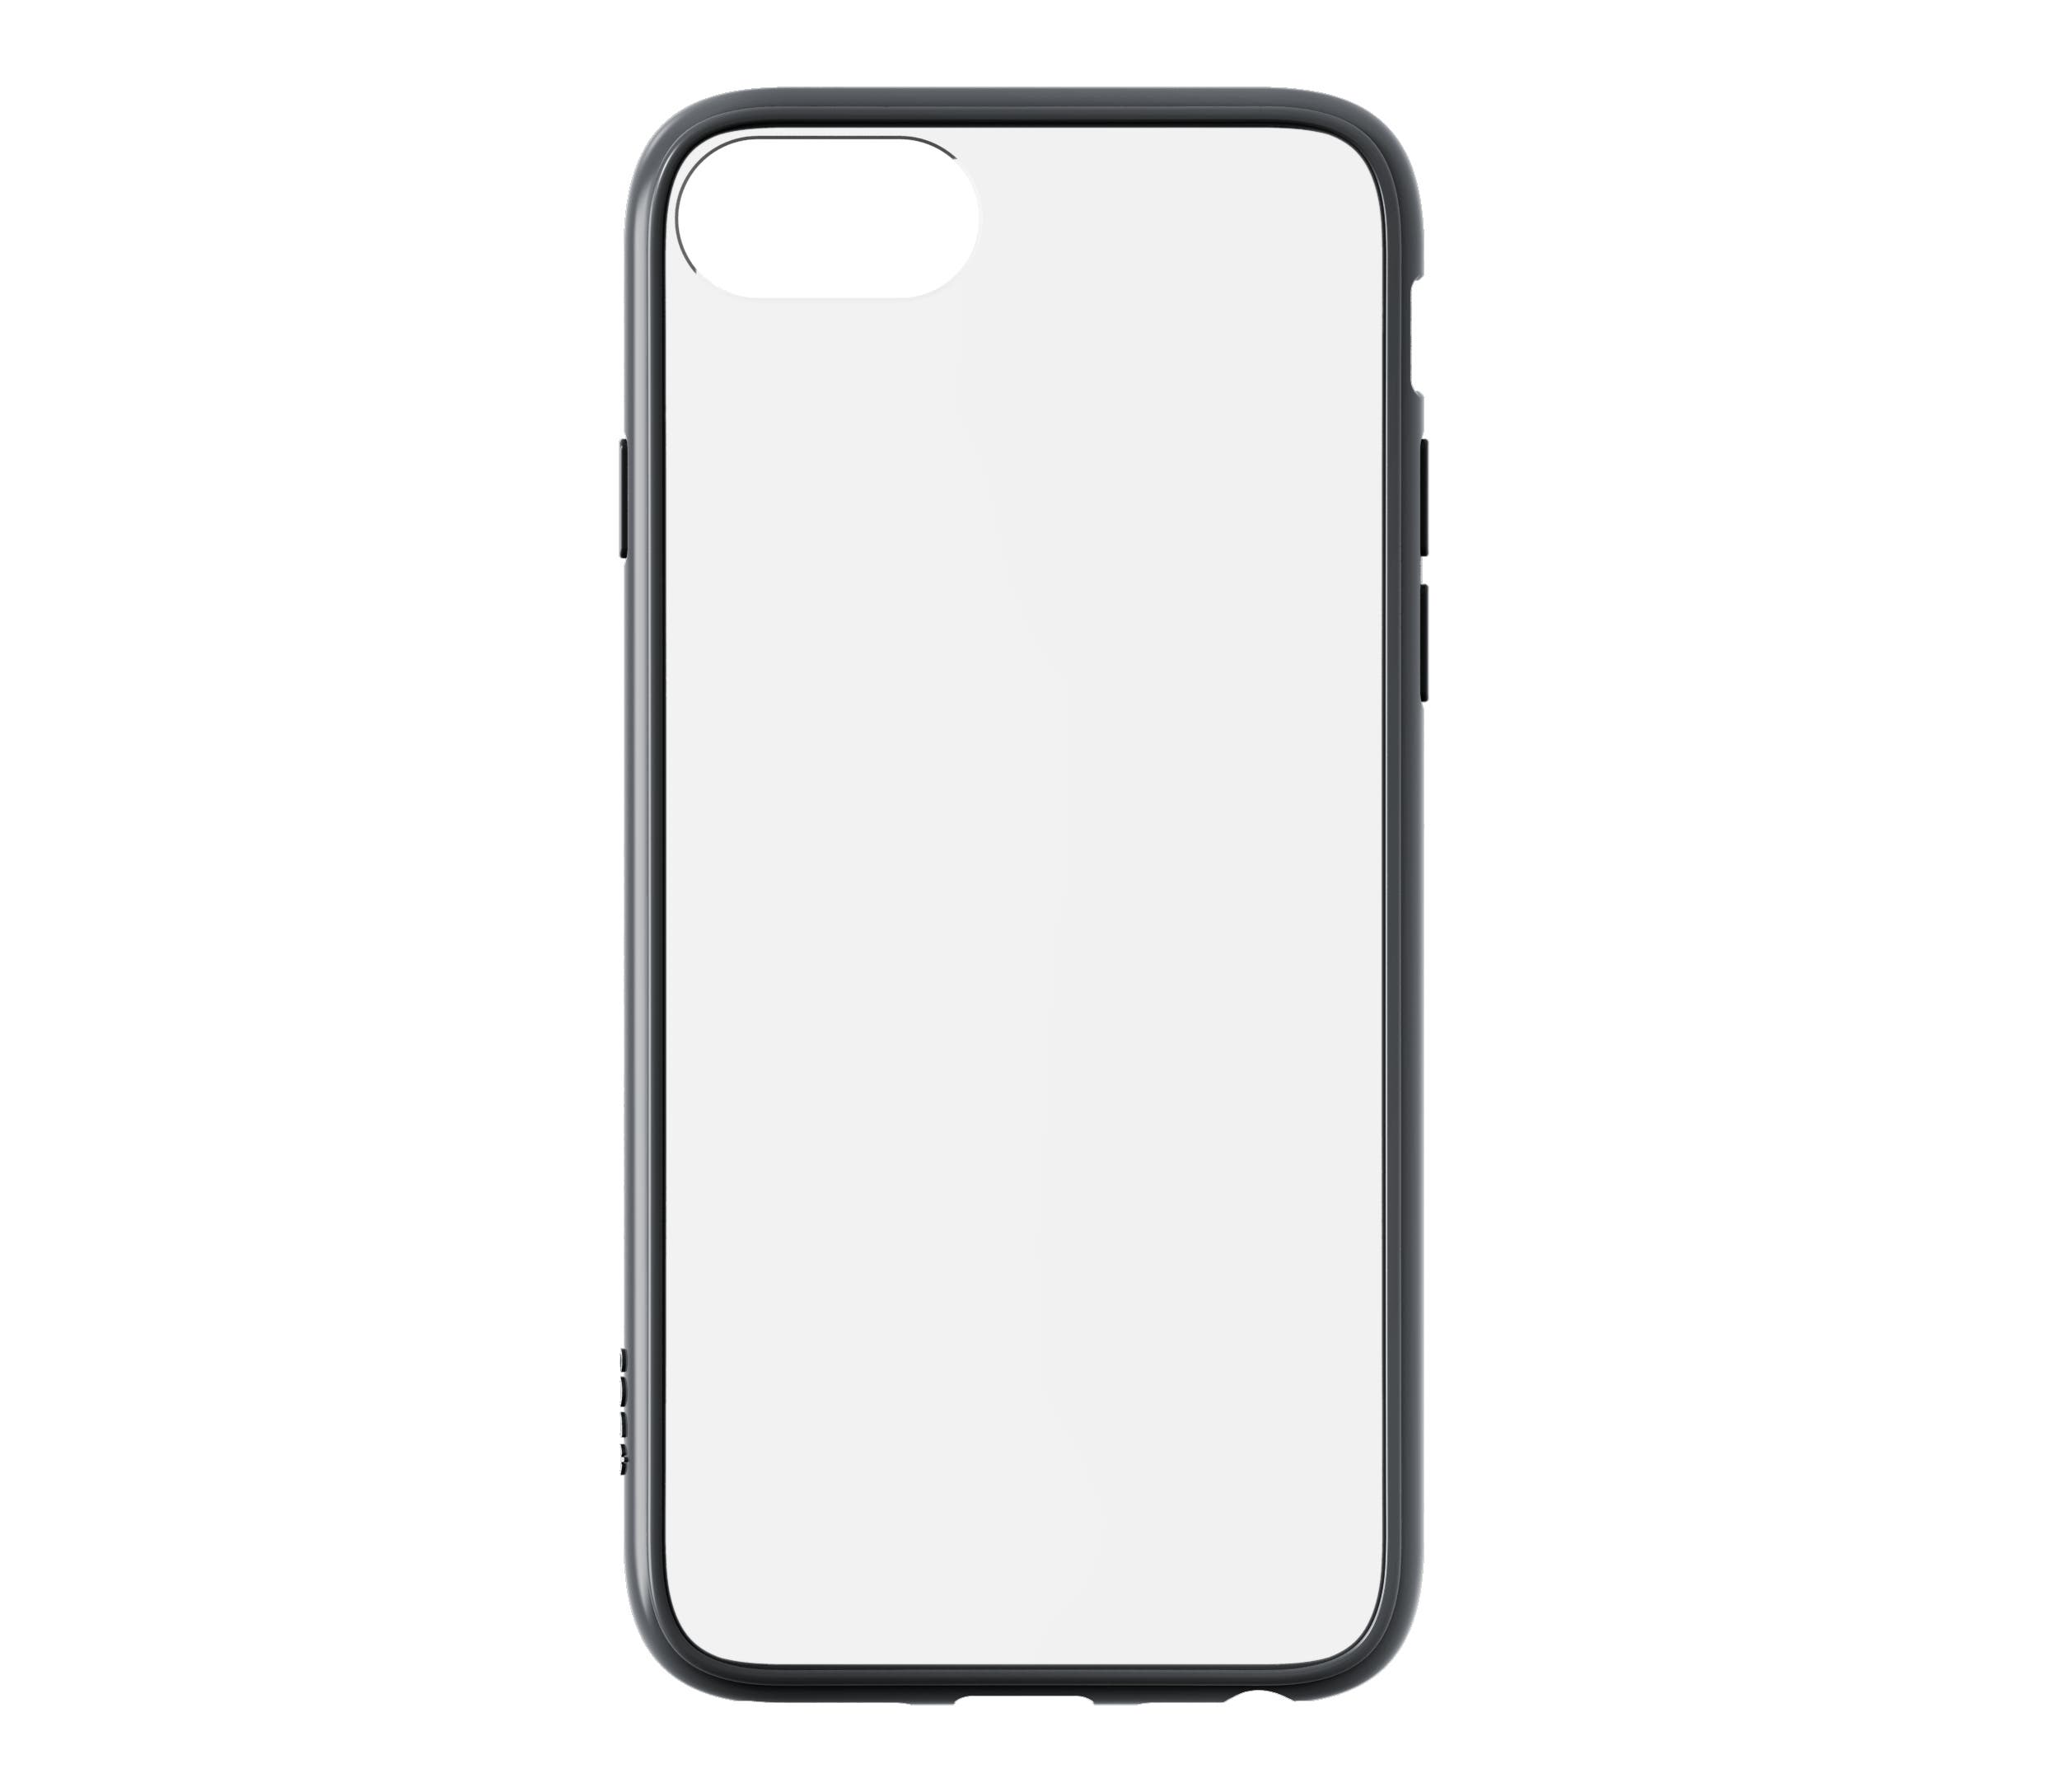 QDOS Hybrid Case for iPhone SE / 8 / 7 - Space Grey